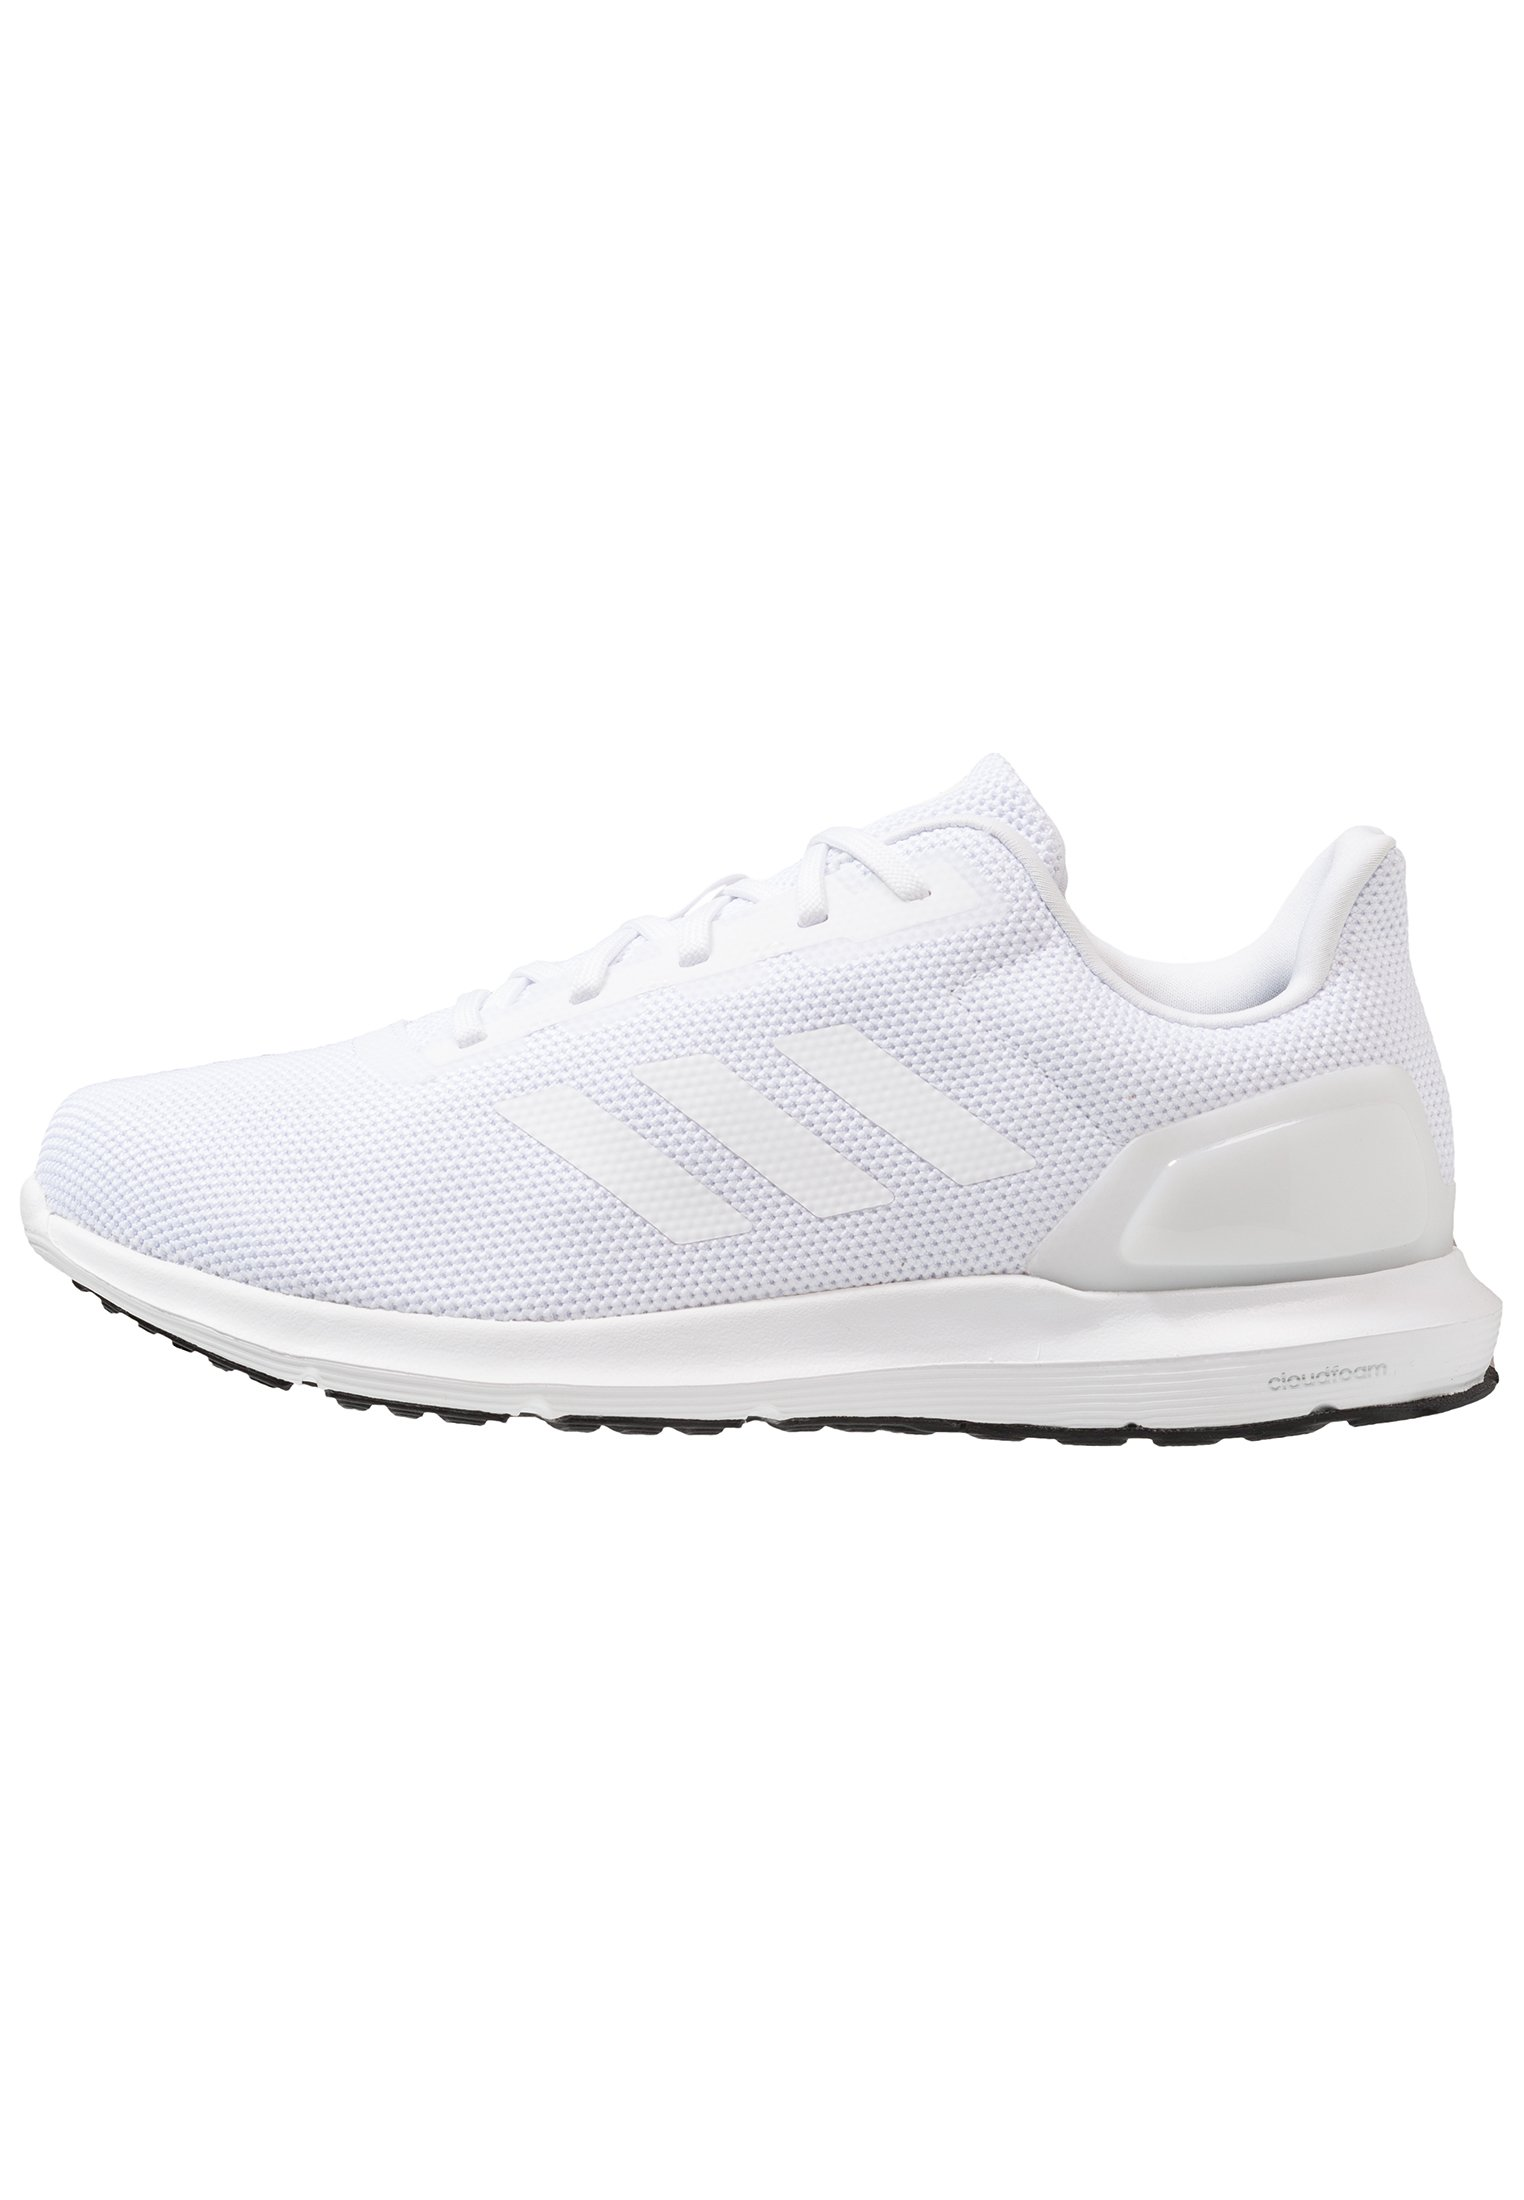 COSMIC 2 Laufschuh Neutral footwear white